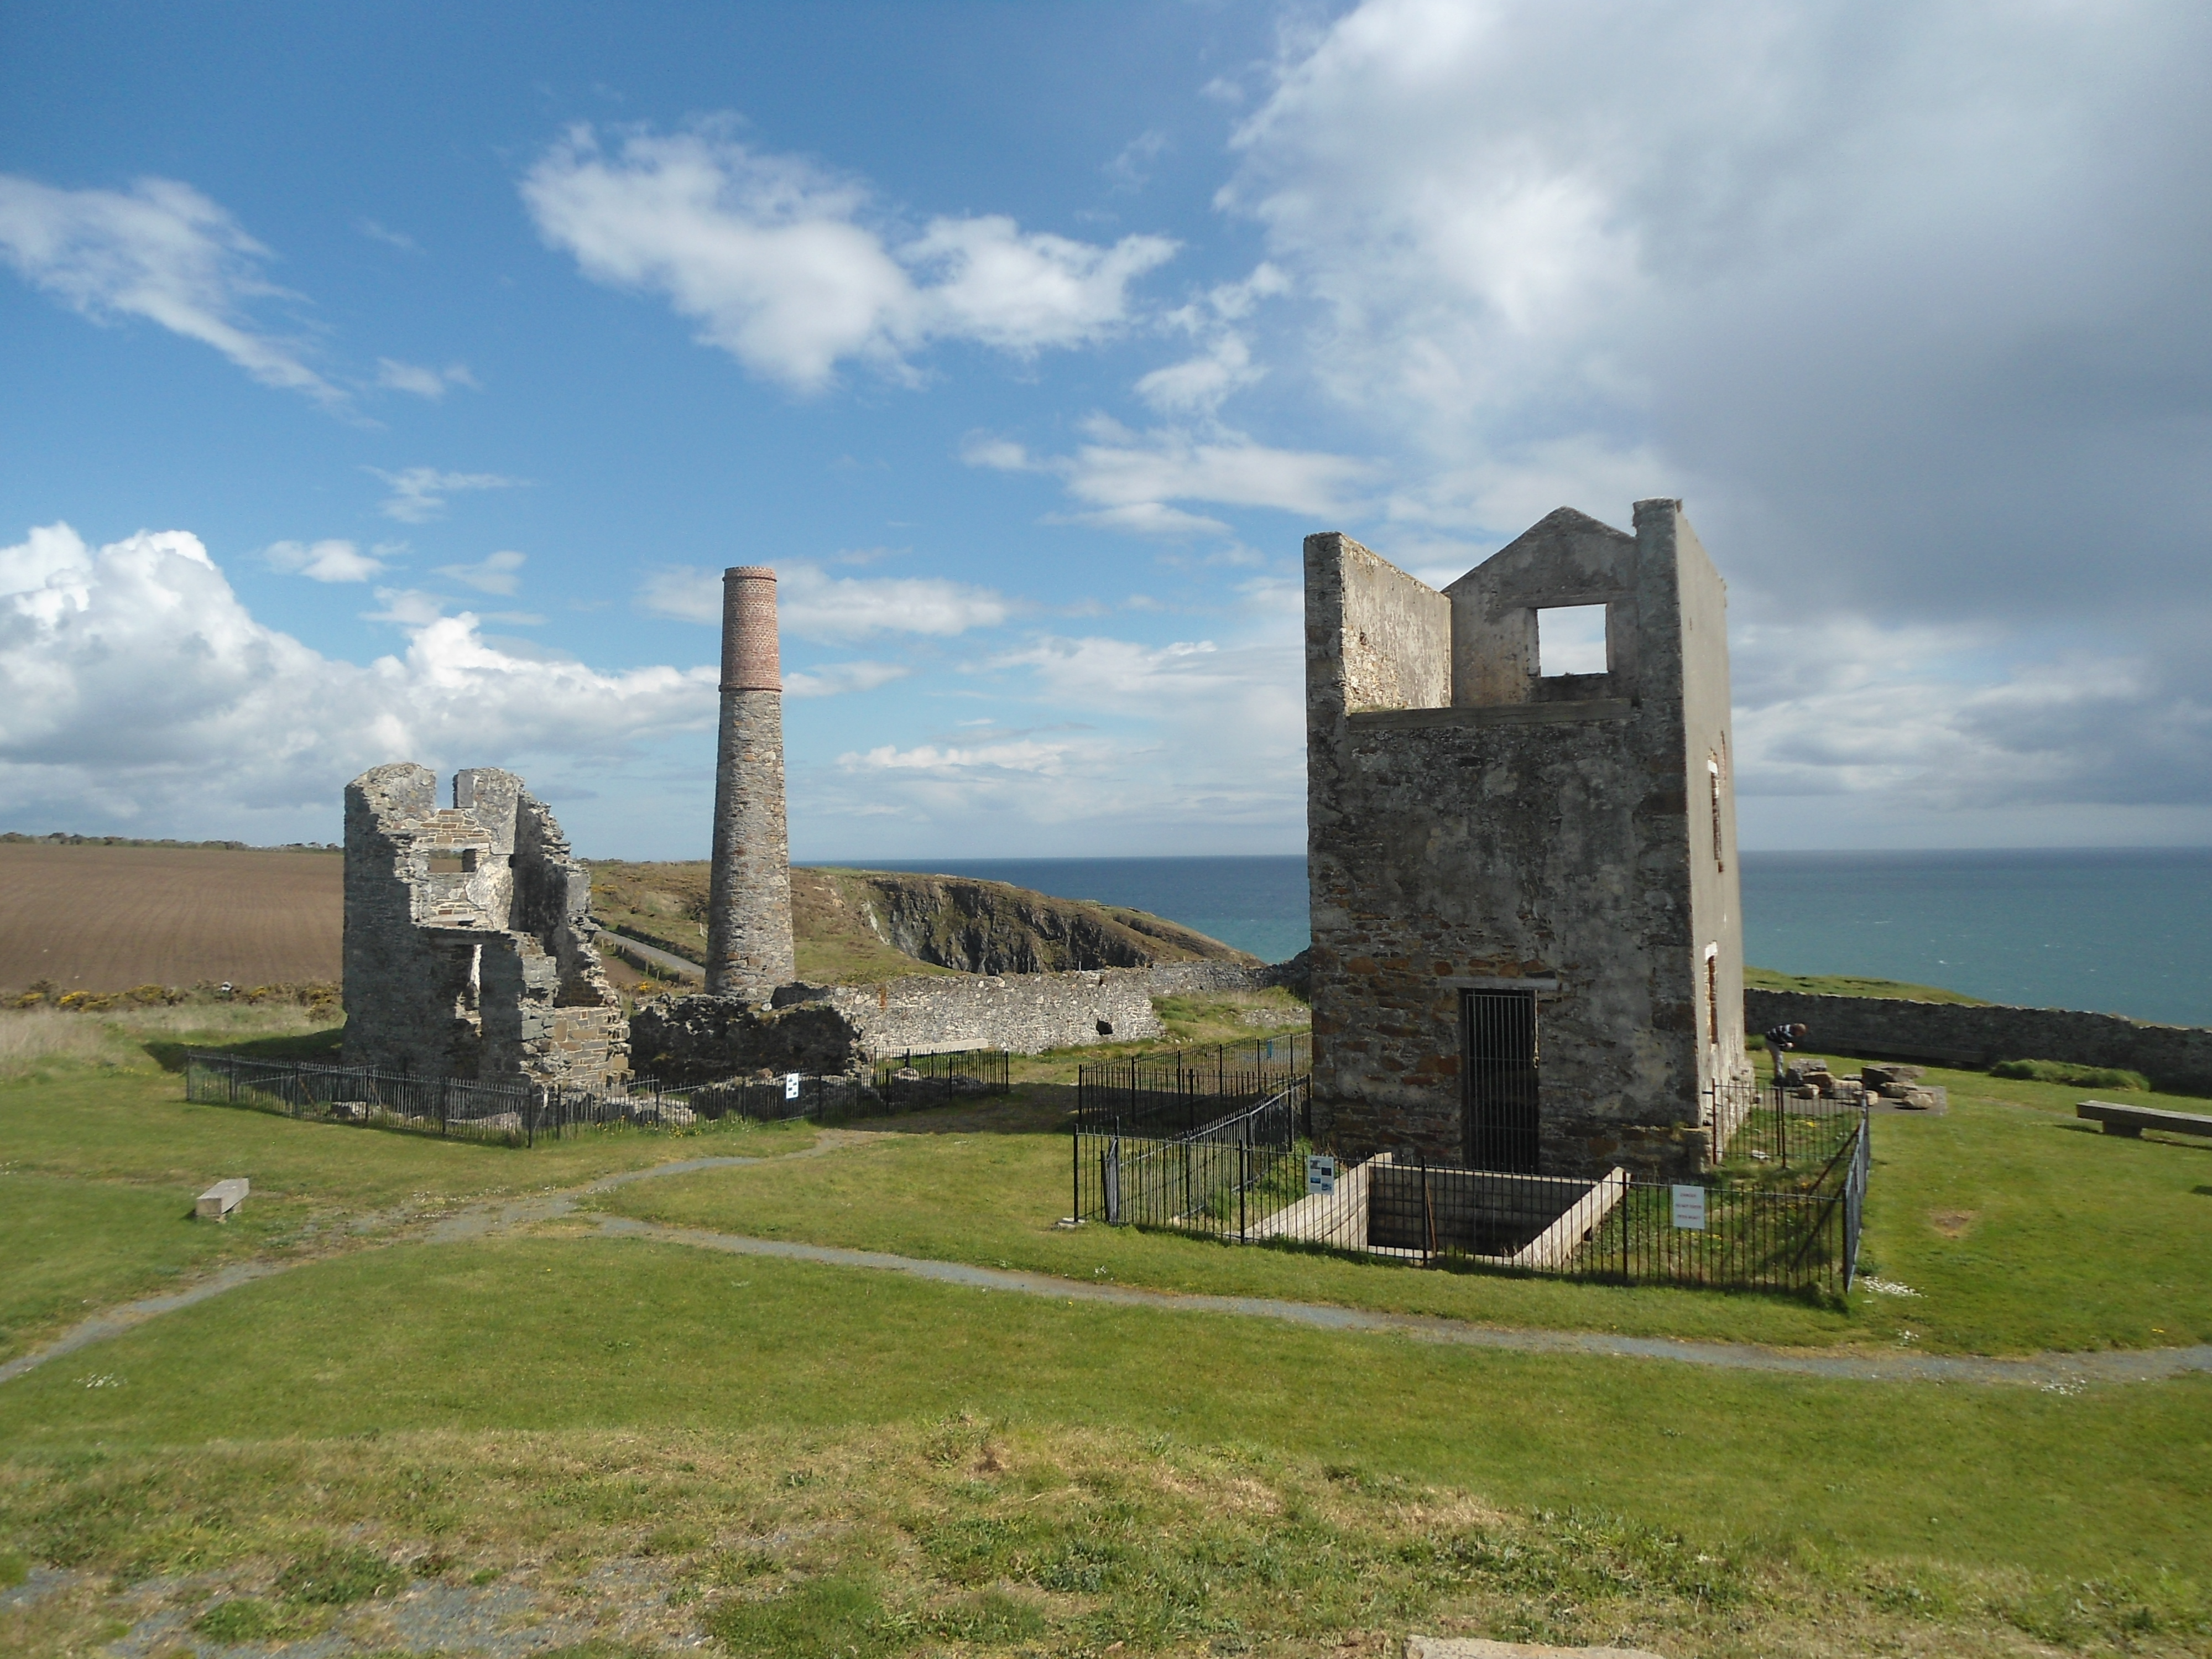 Restored Copper Mines at Tankardstown, Co. Waterford